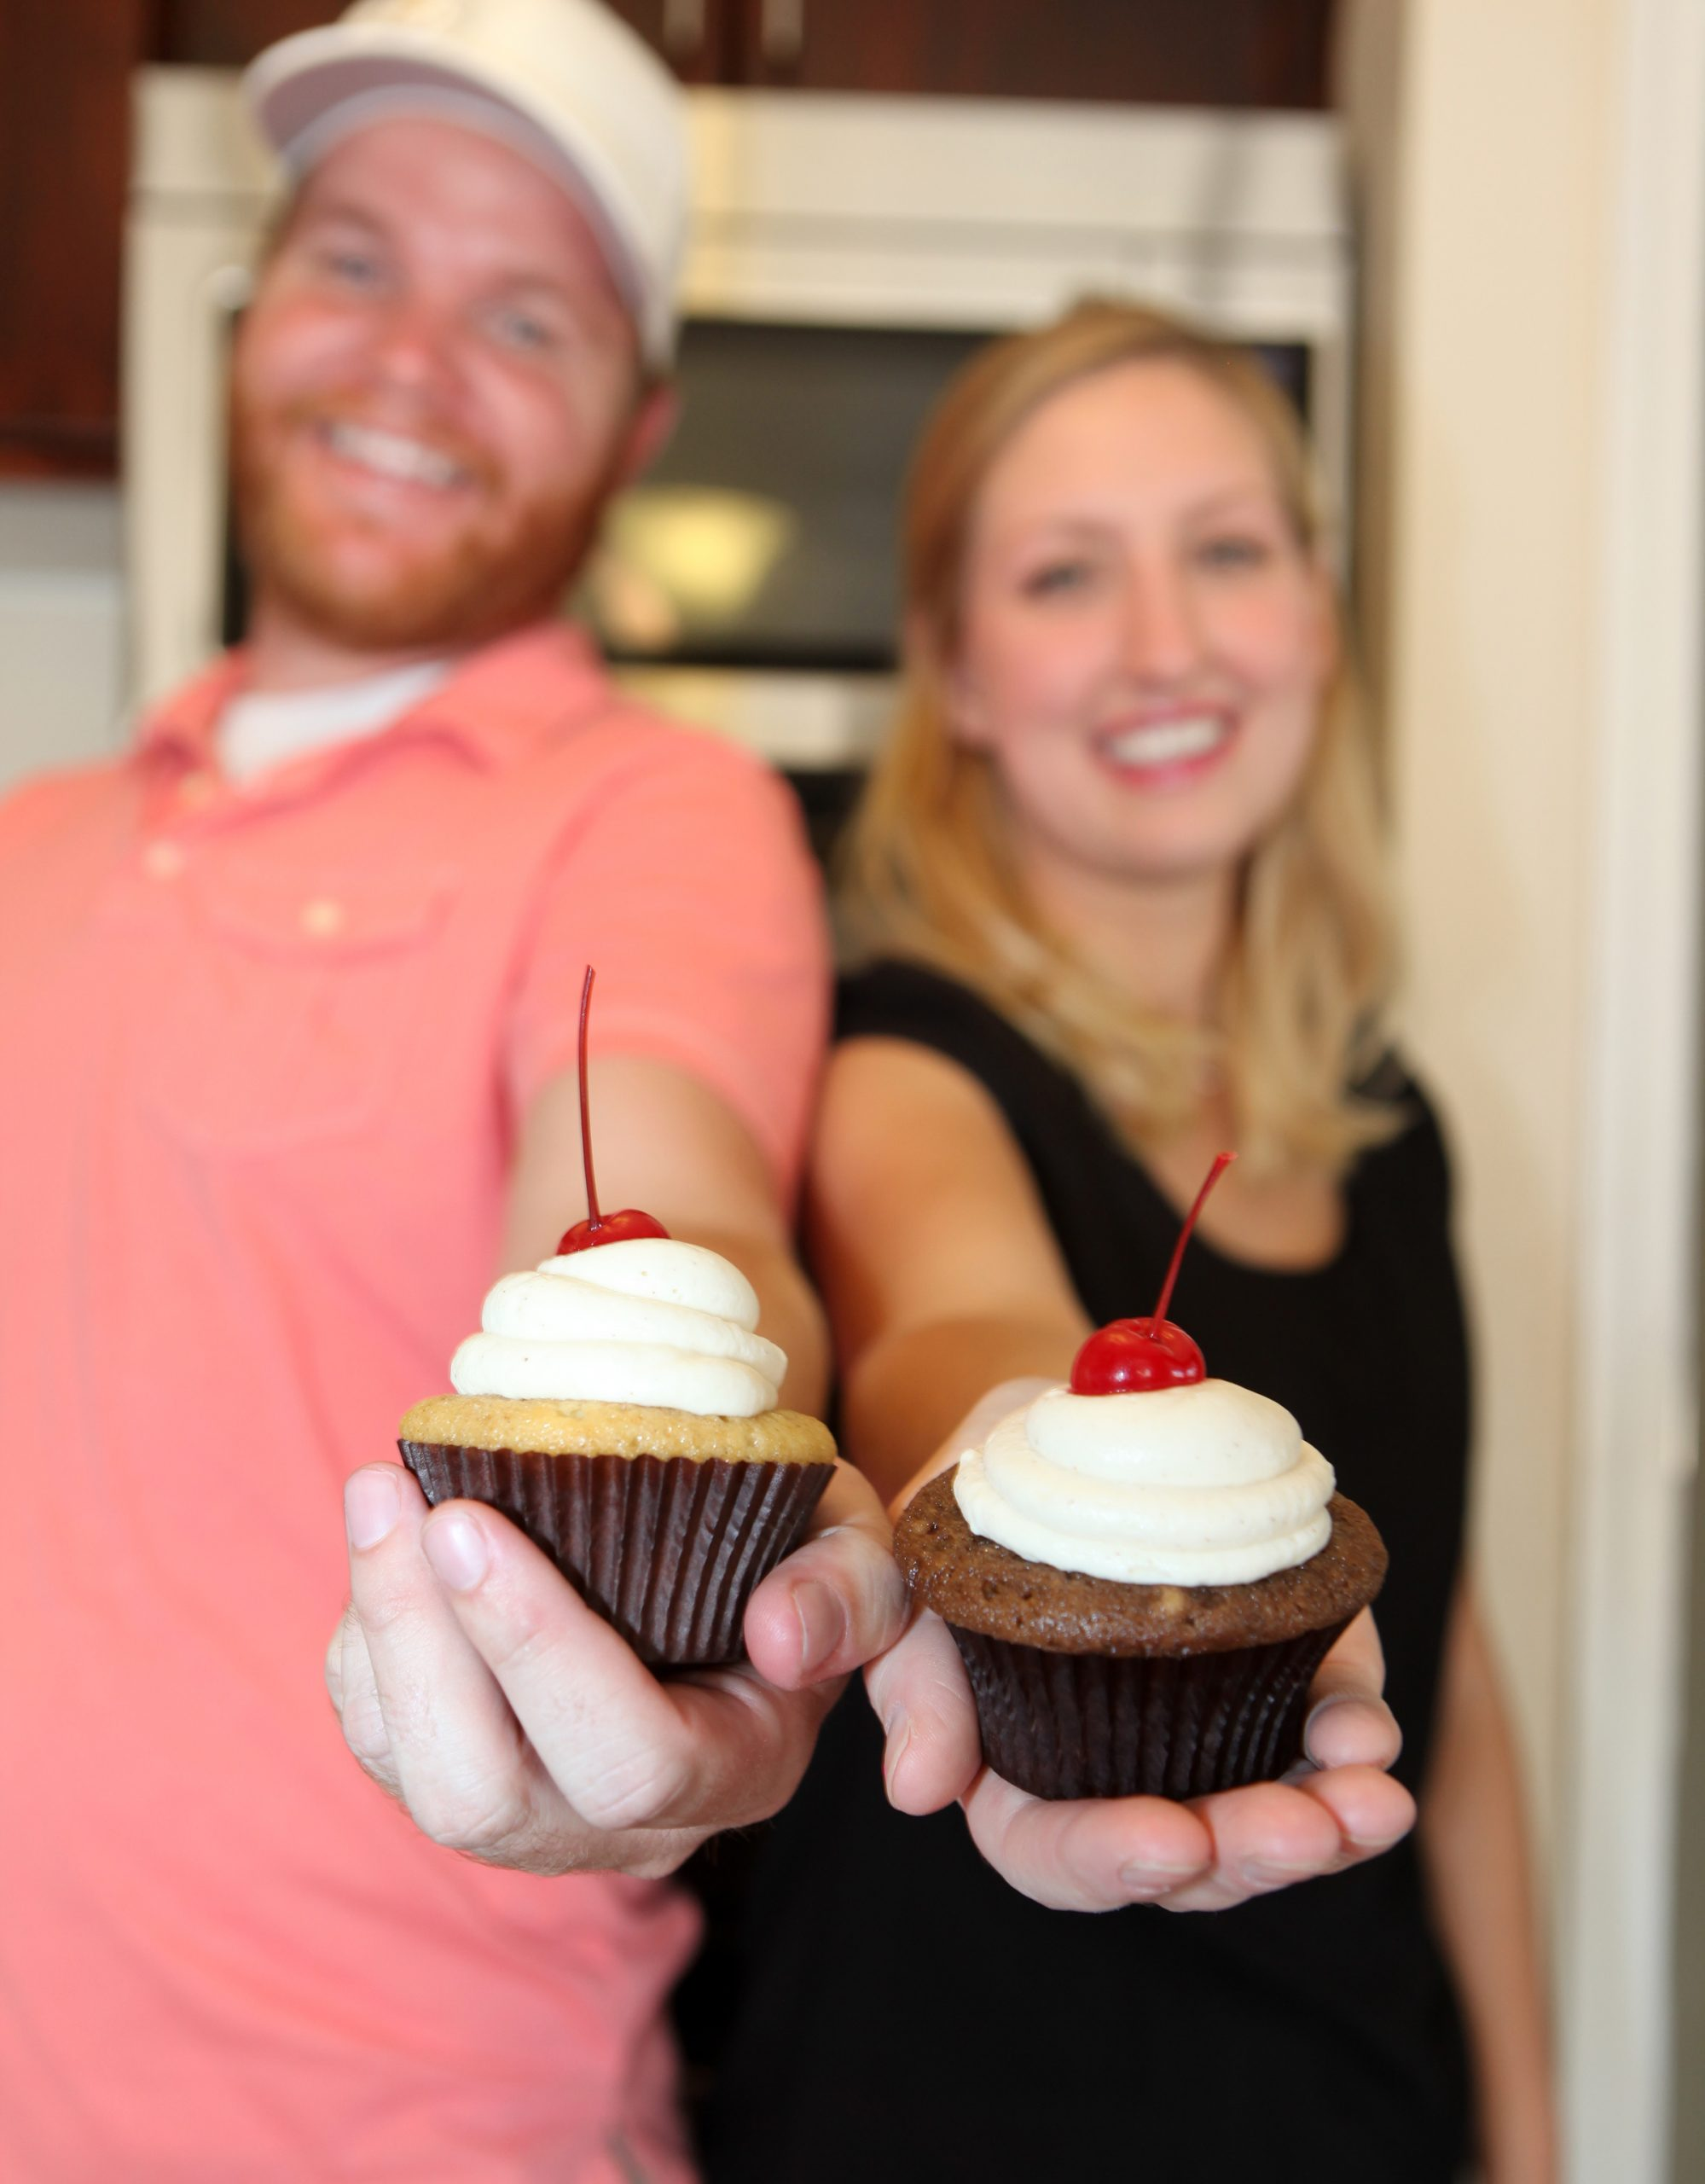 Erik and Cori Larsen launched a cupcake store in India featuring flavors such as coriander, anise and chicku.